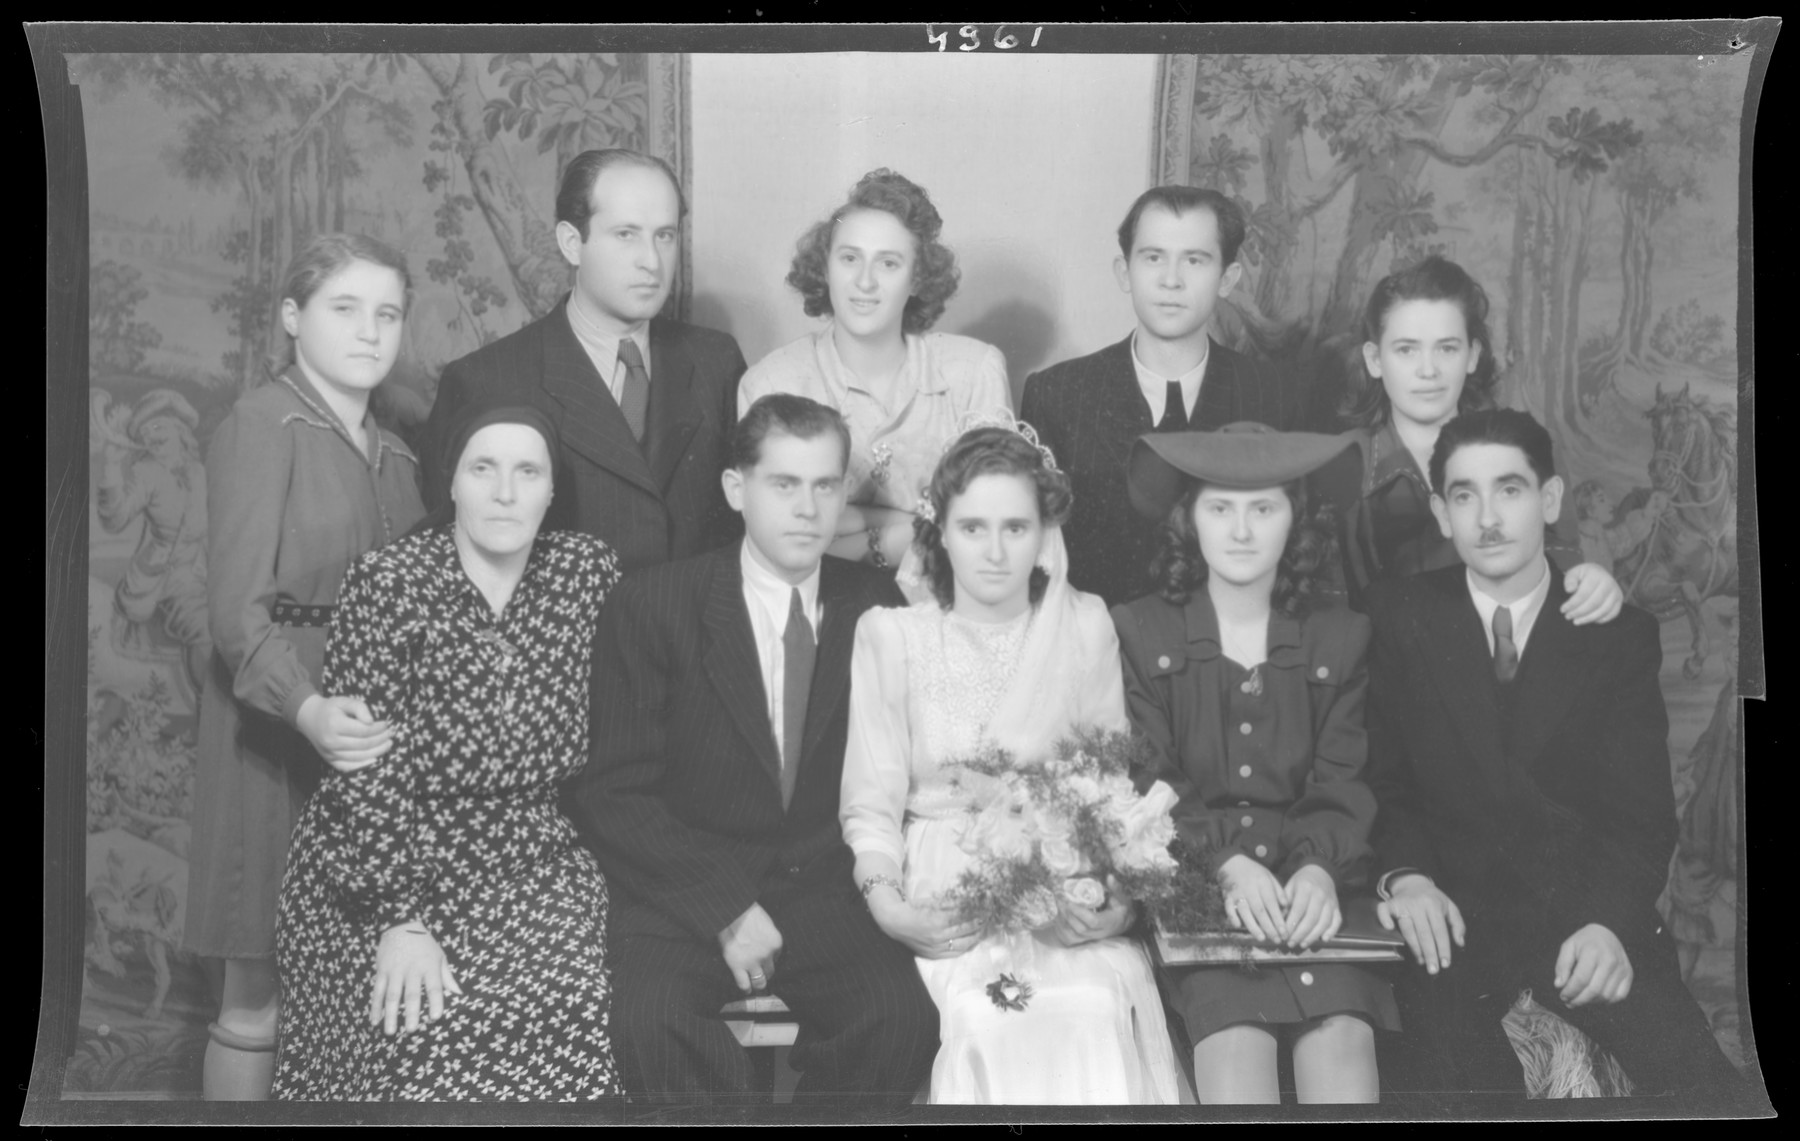 Studio group portrait of the wedding of Albert and Sara Grunwald.  Behind them are Kalman and Irina Grunwald.